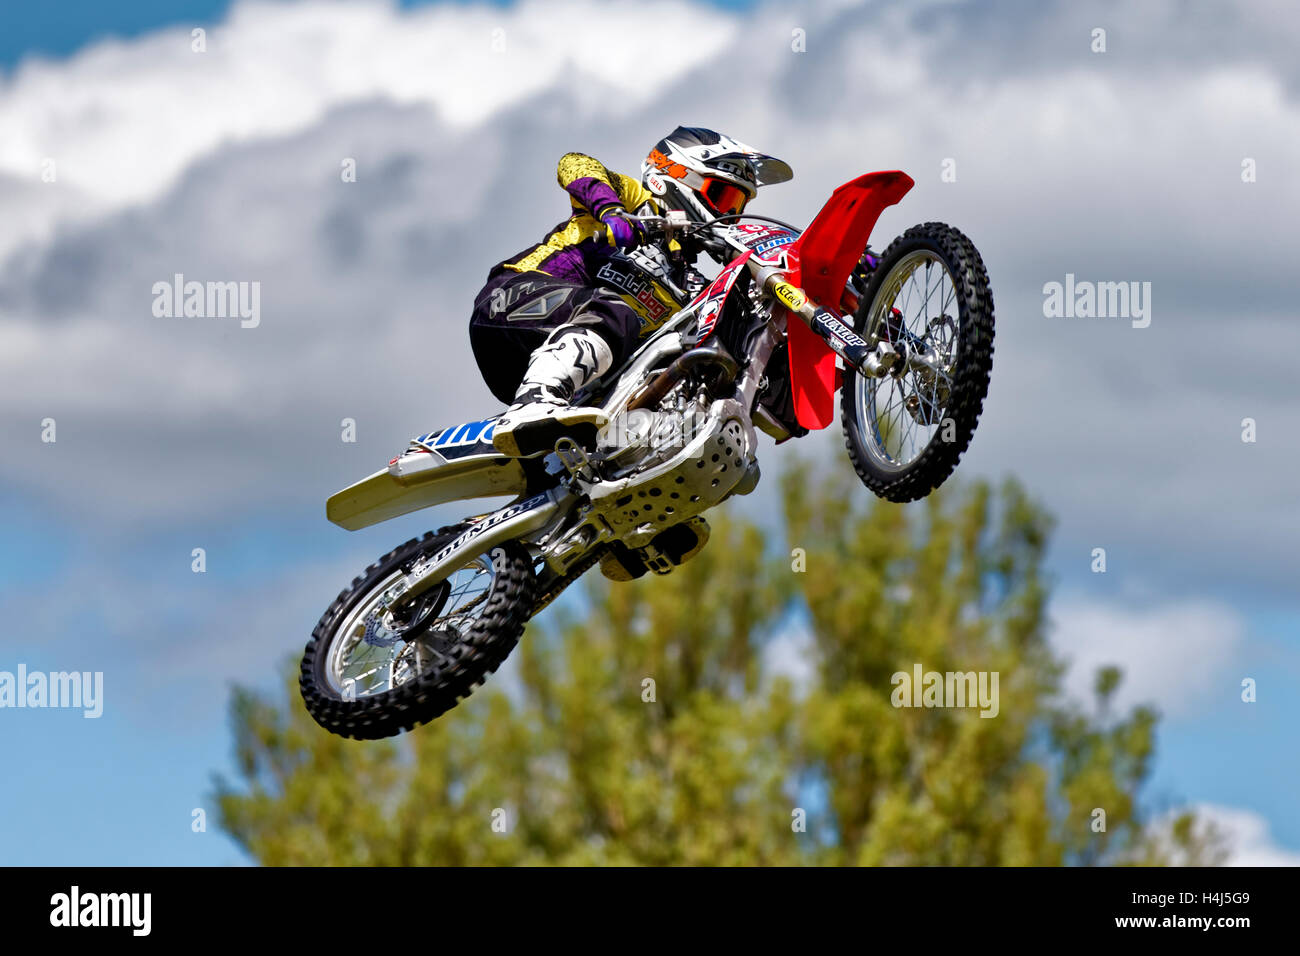 A member of the Bolddog Lings Freestyle Motocycle Display Team performs stunts at the 2015 Wilton House Classic - Stock Image